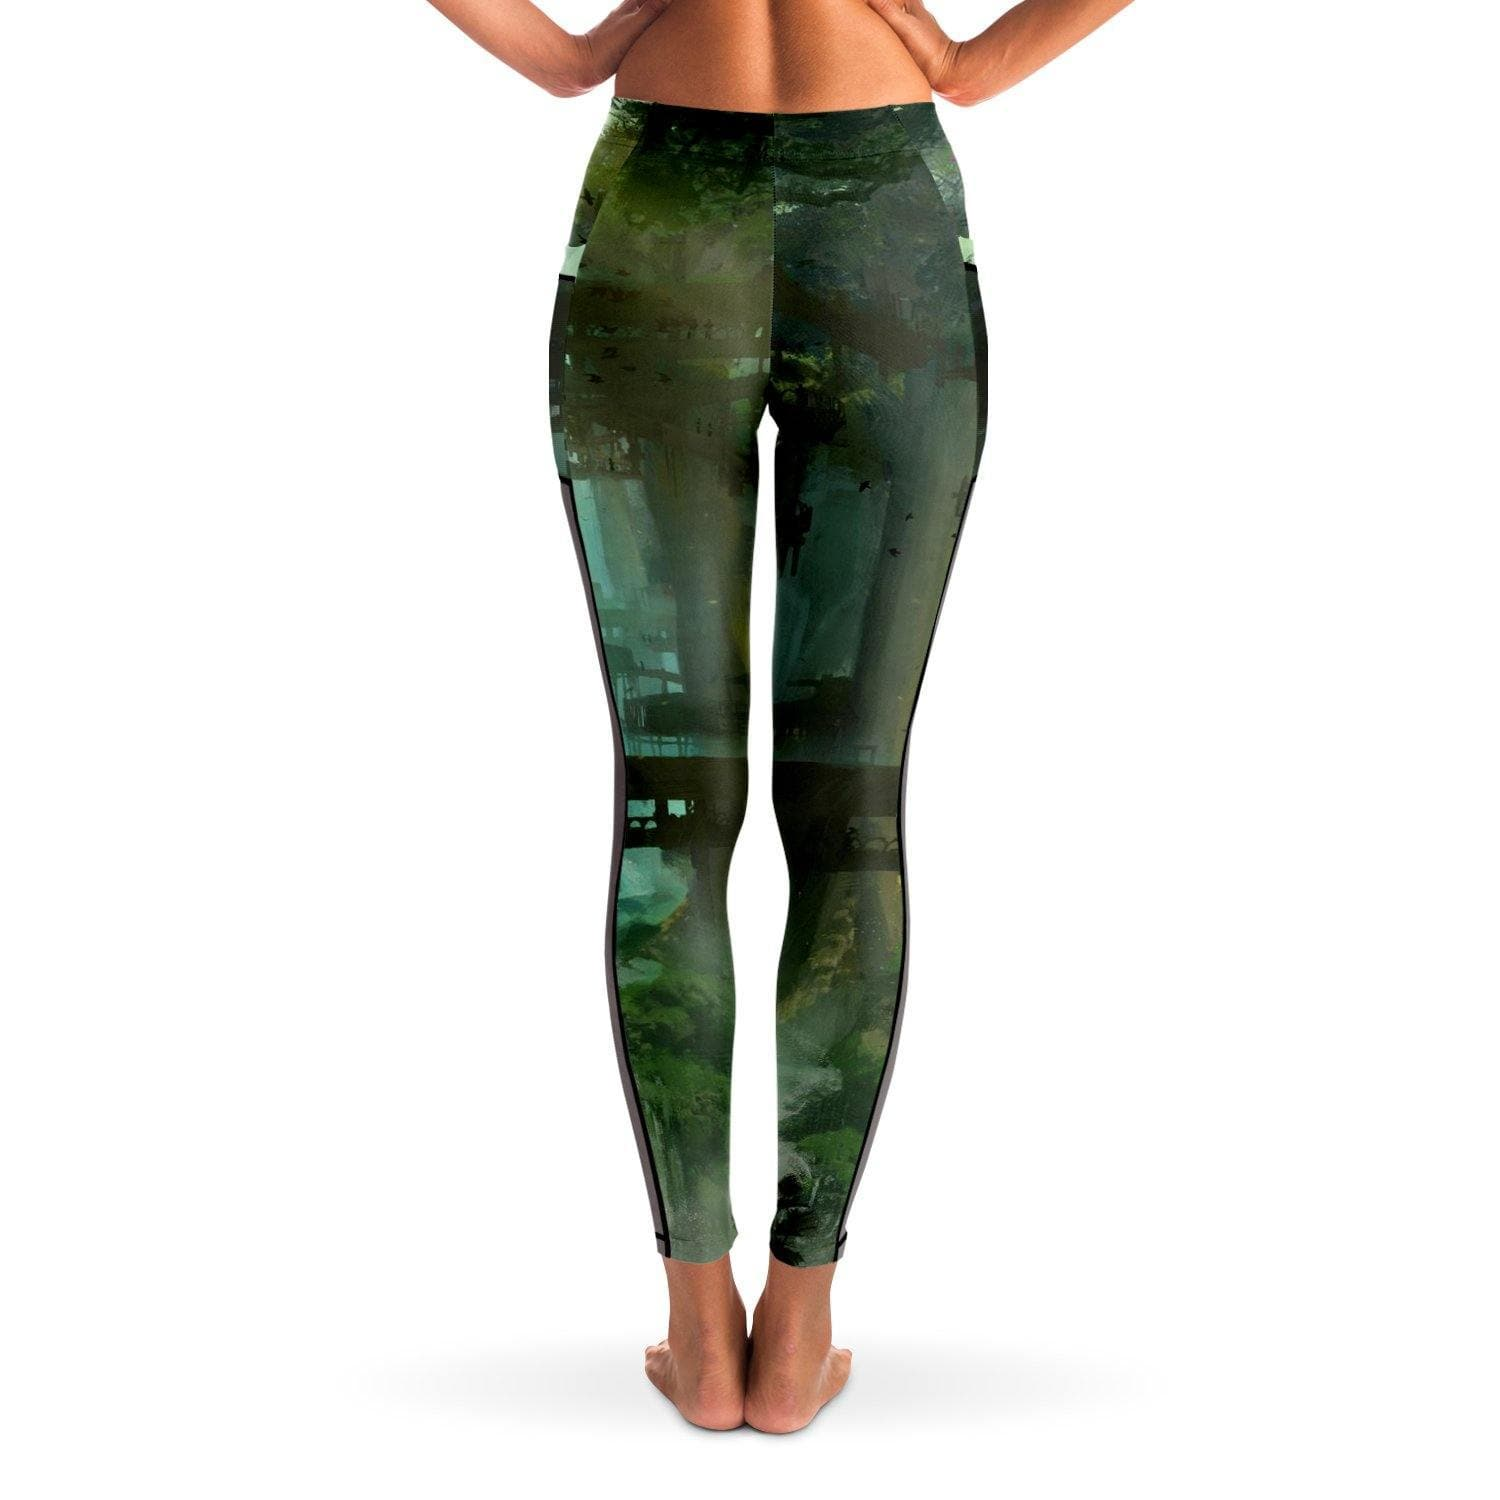 Garuda Waterfalls Mesh Pocket Leggings - Swordsfall